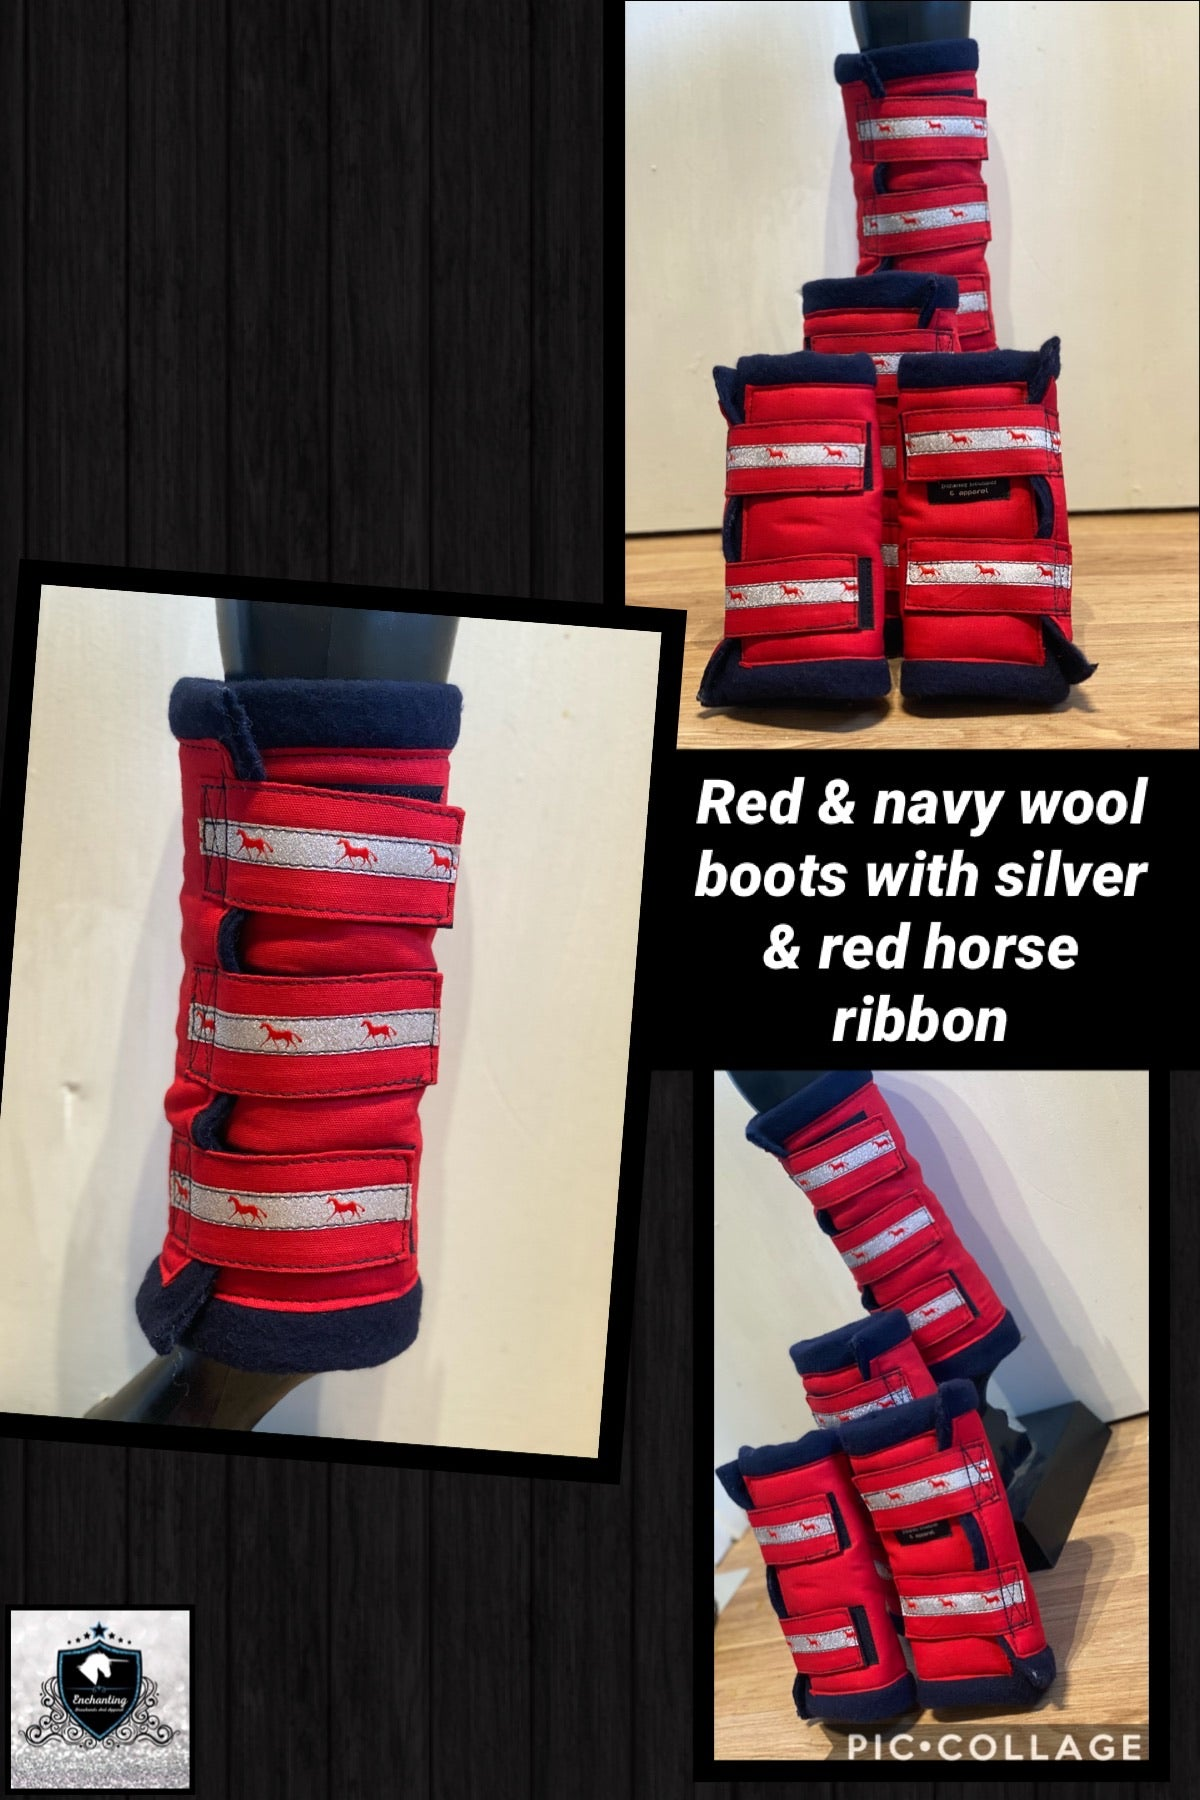 Red & navy wool boots with ribbon